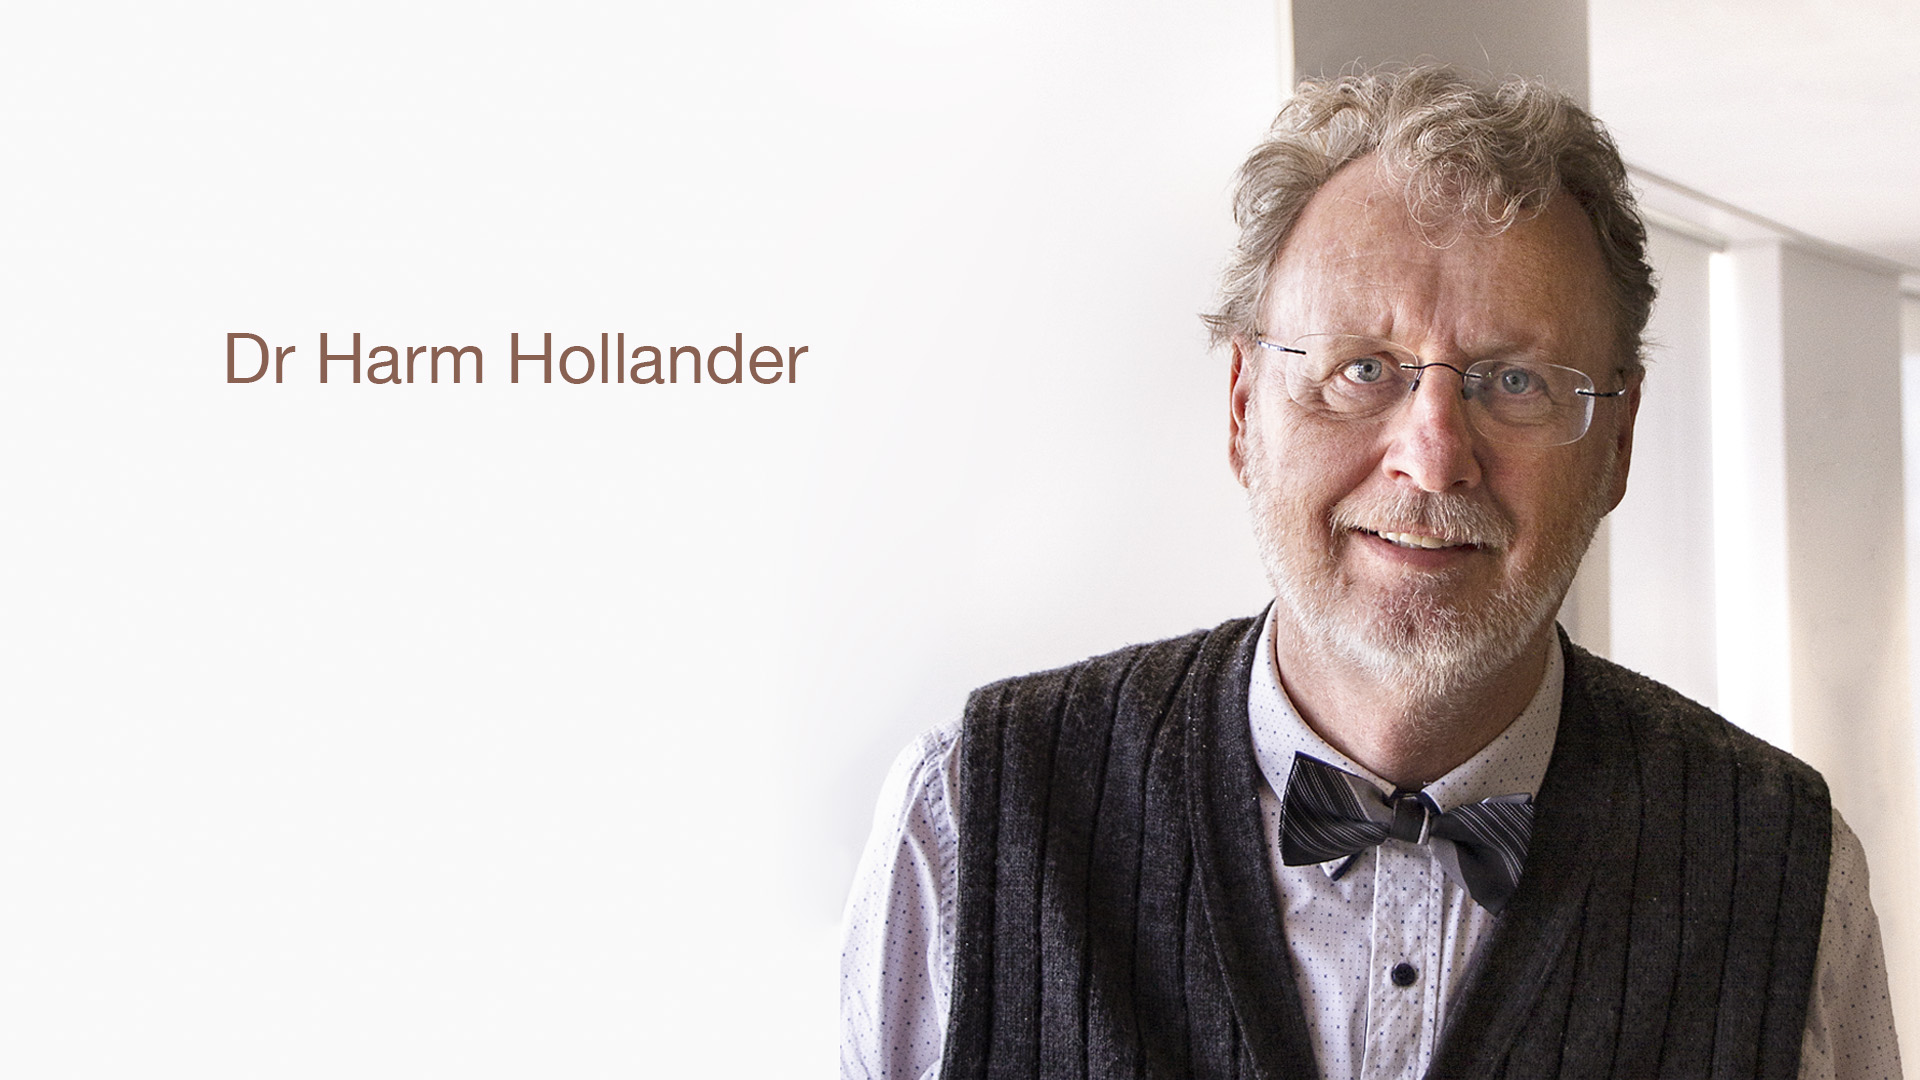 Dr Harm Hollander